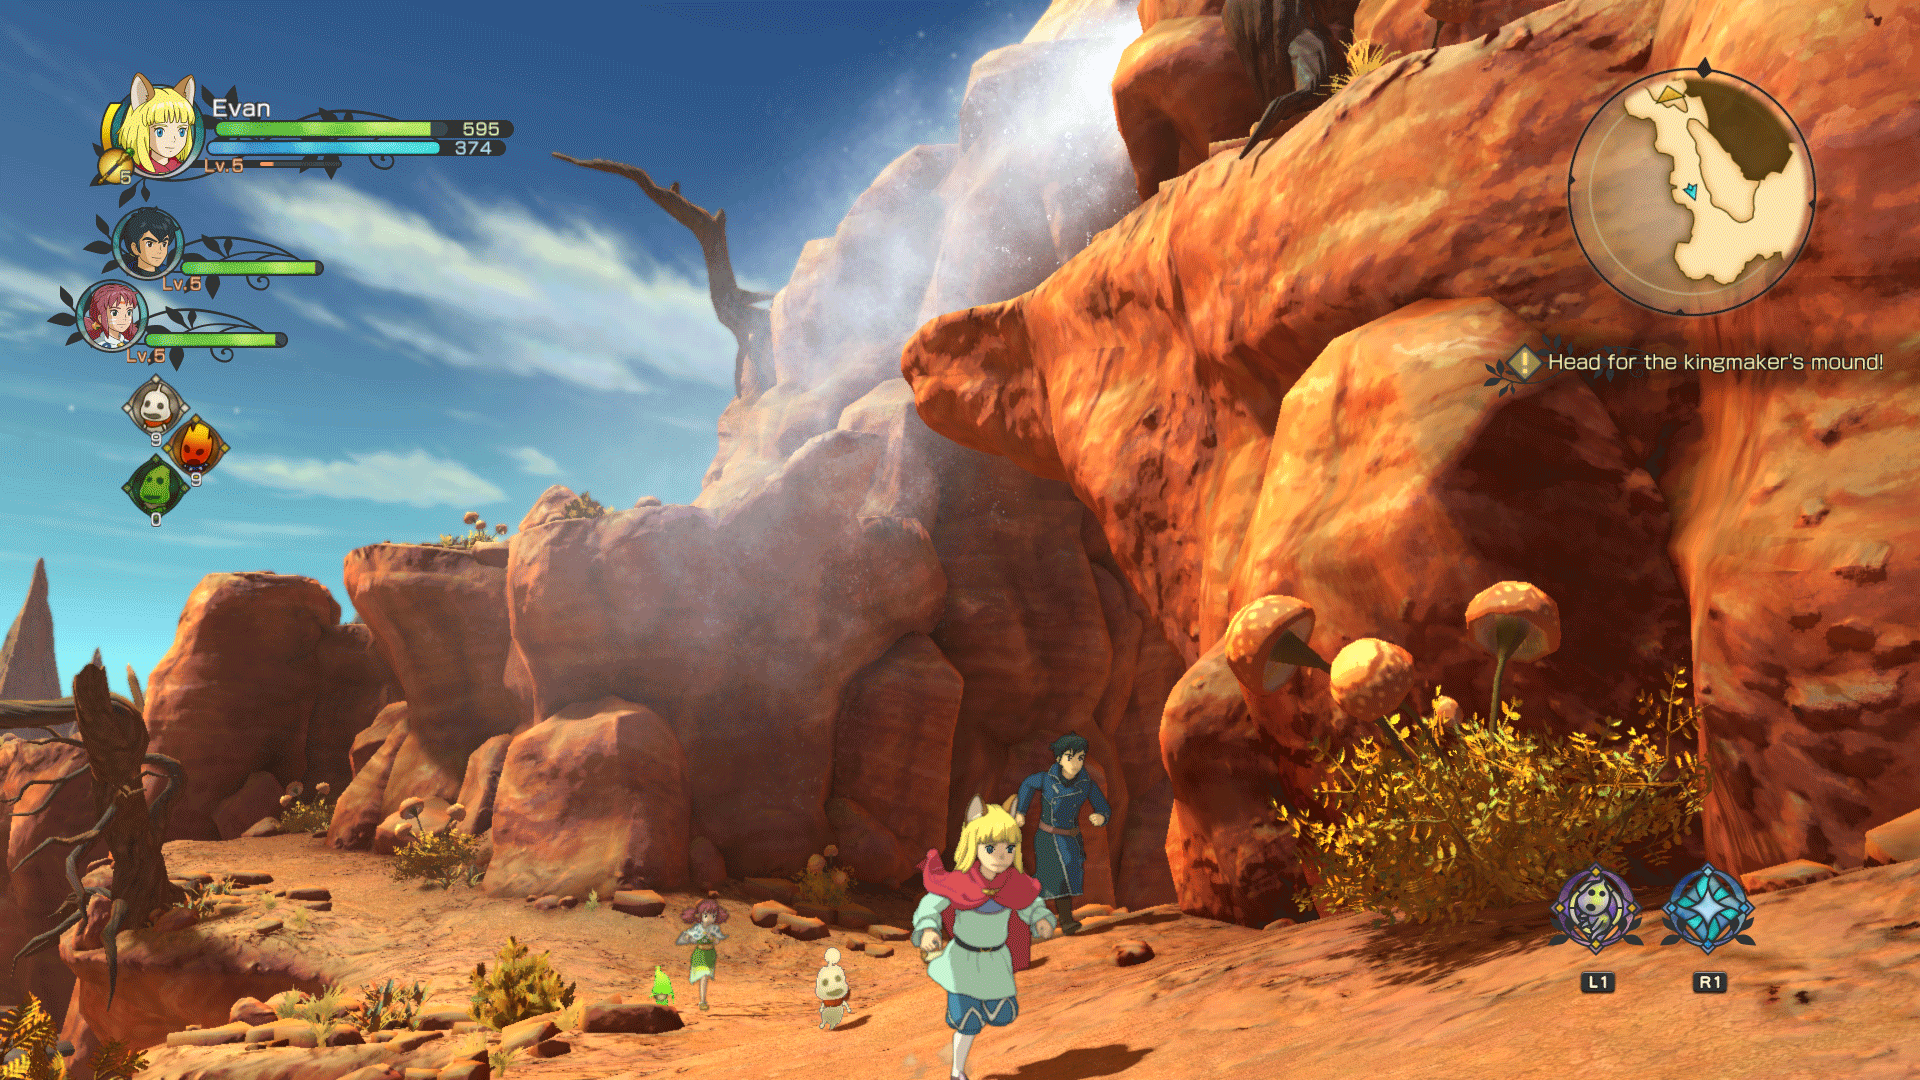 ni-no-kuni-2-screens-7